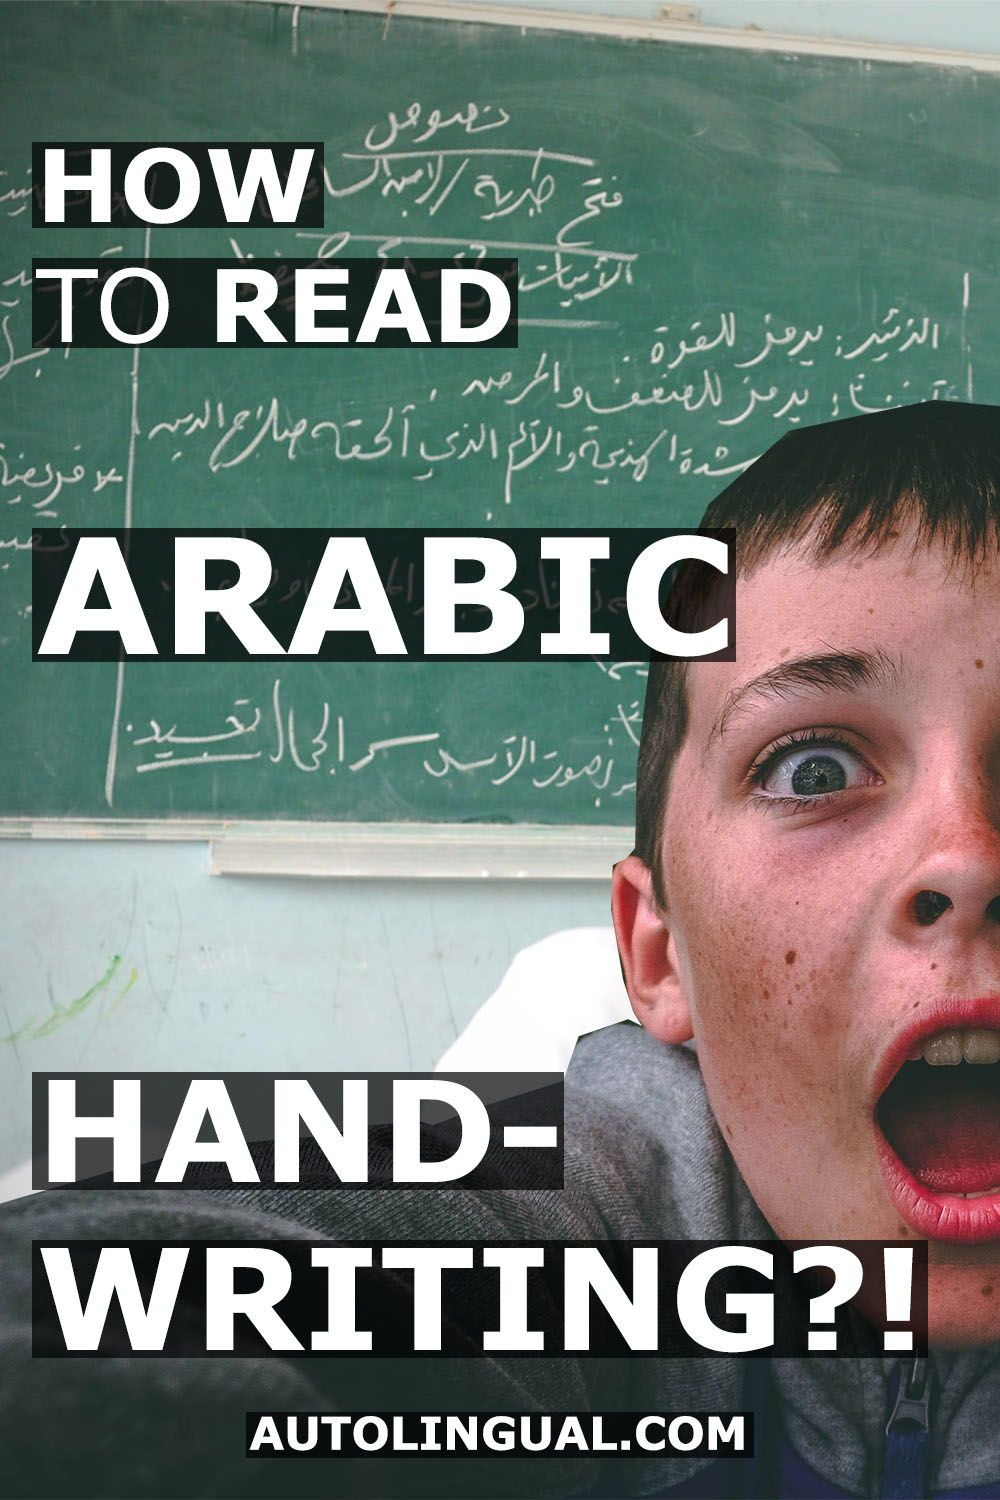 How To Read Arabic Handwriting? A Guide With Examples! in